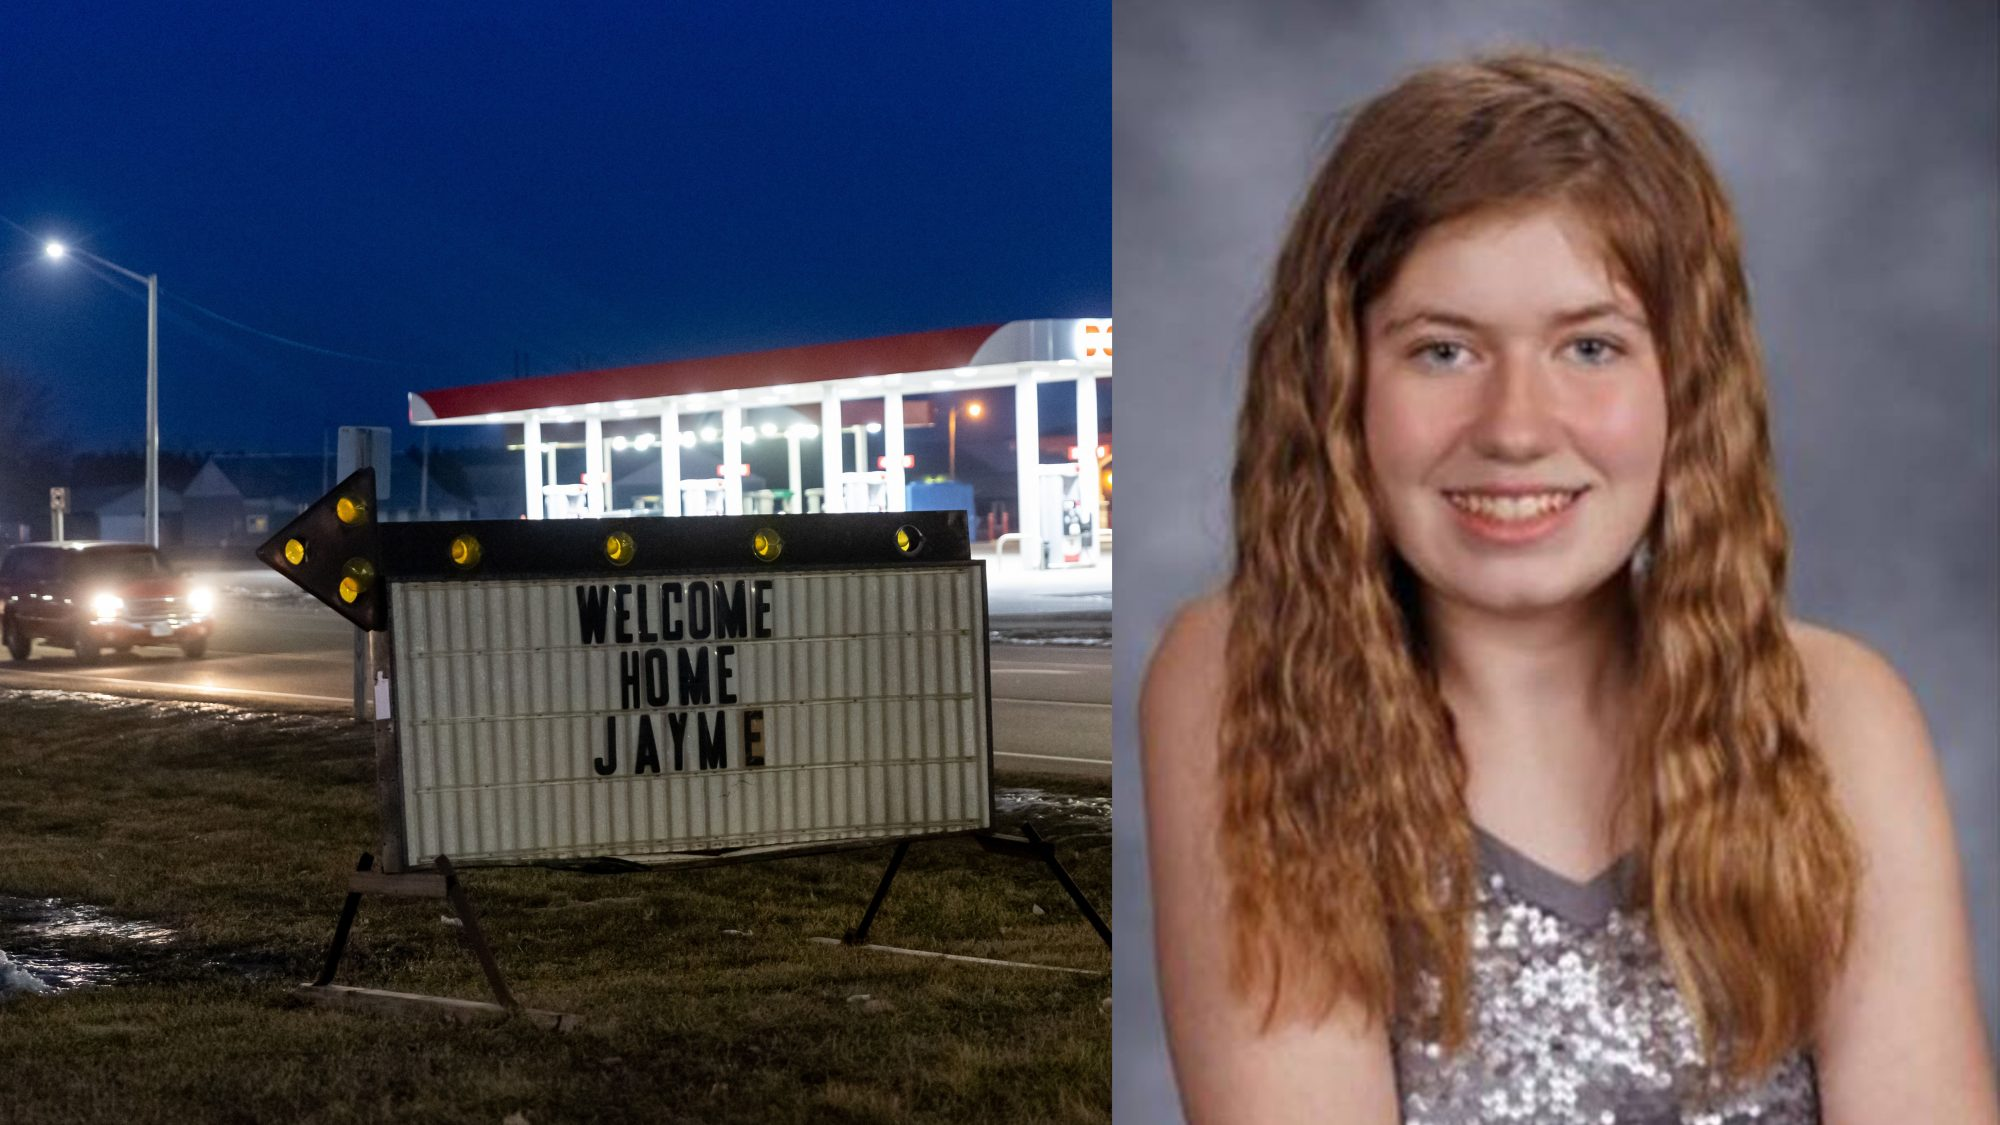 jayme closs rescue crime news woman health trauma recovery PTSD victims violent crime heal emotionally violence psychology